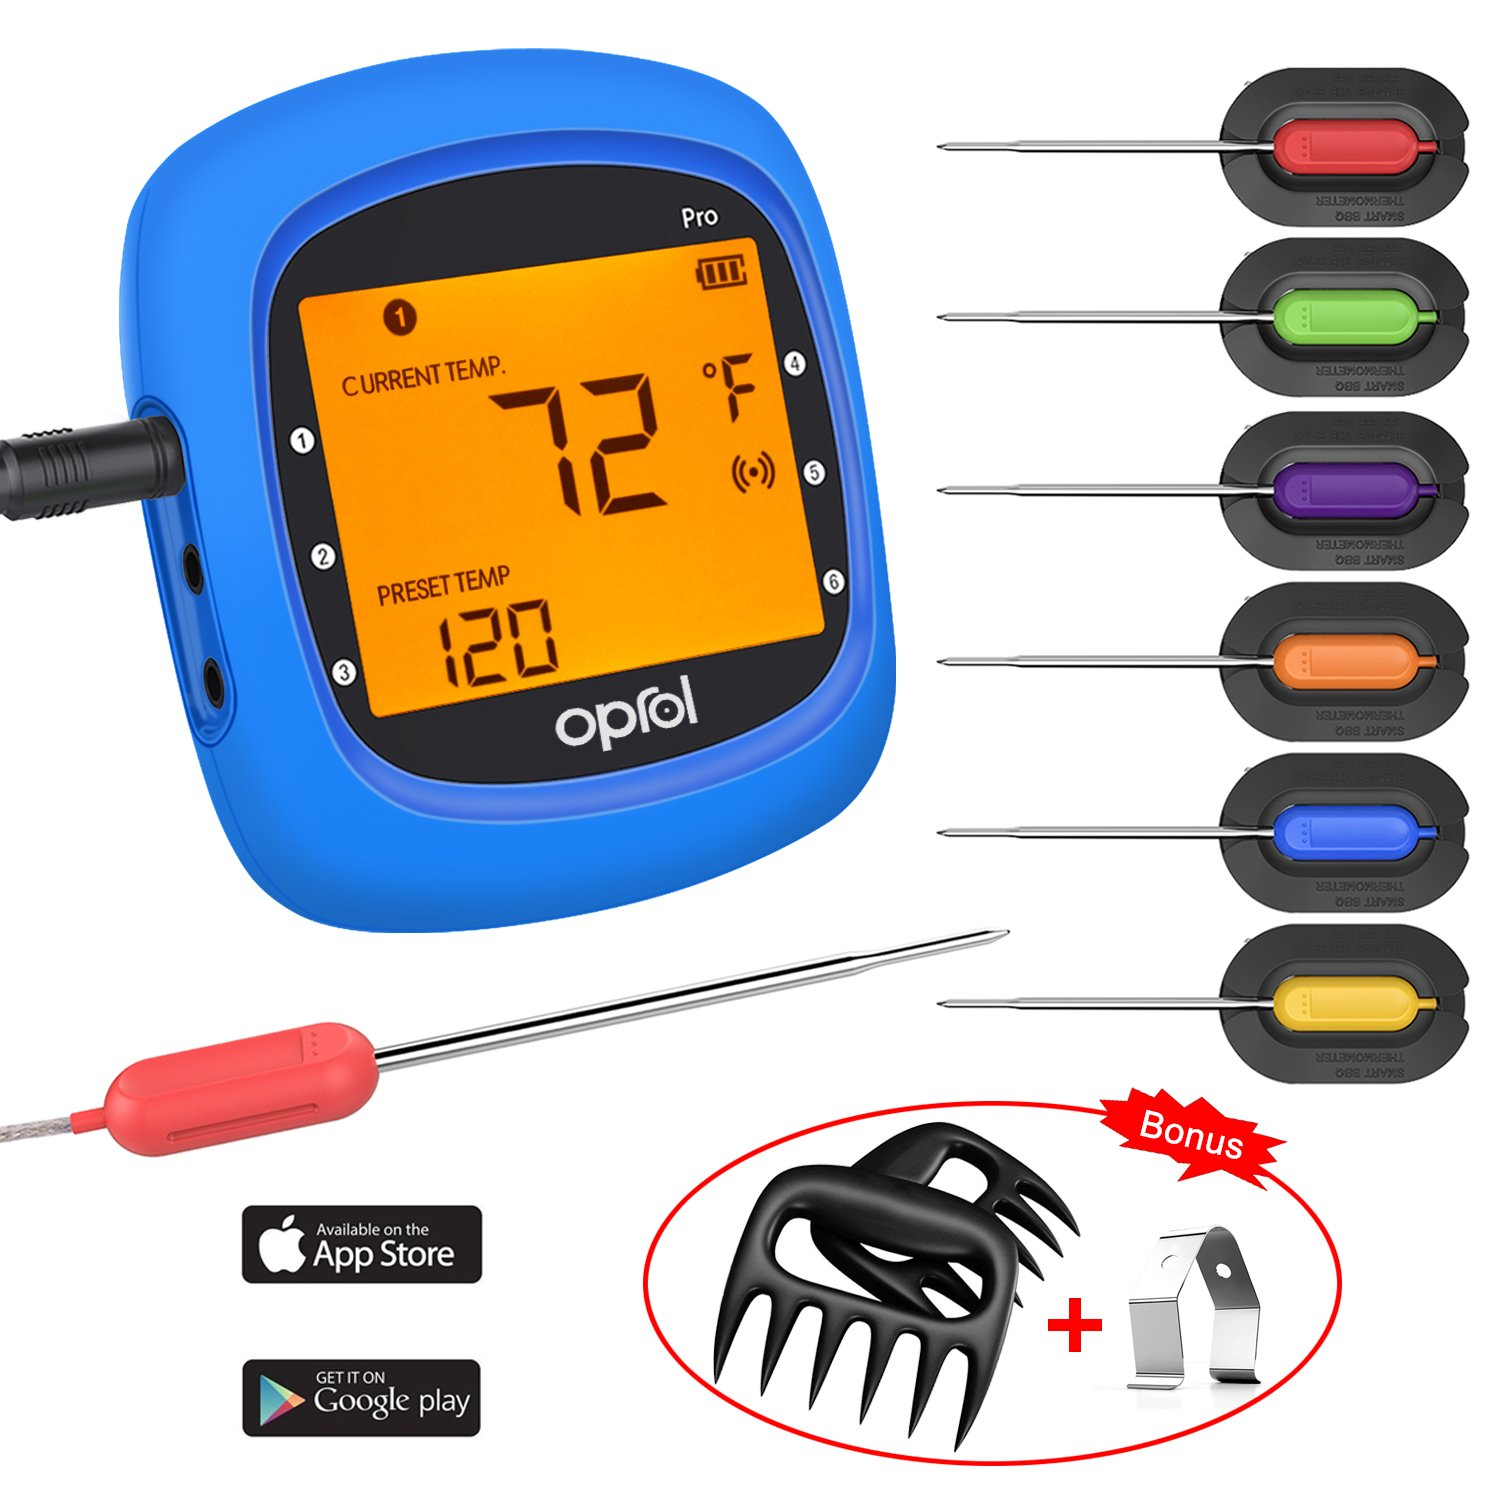 Bluetooth Meat Thermometer, Wireless Digital BBQ Thermometer for Grilling Smart with 6 Stainless Steel Probes Remoted Monitor for Cooking Smoker Kitchen Oven, Support iOS & Android by Oprol